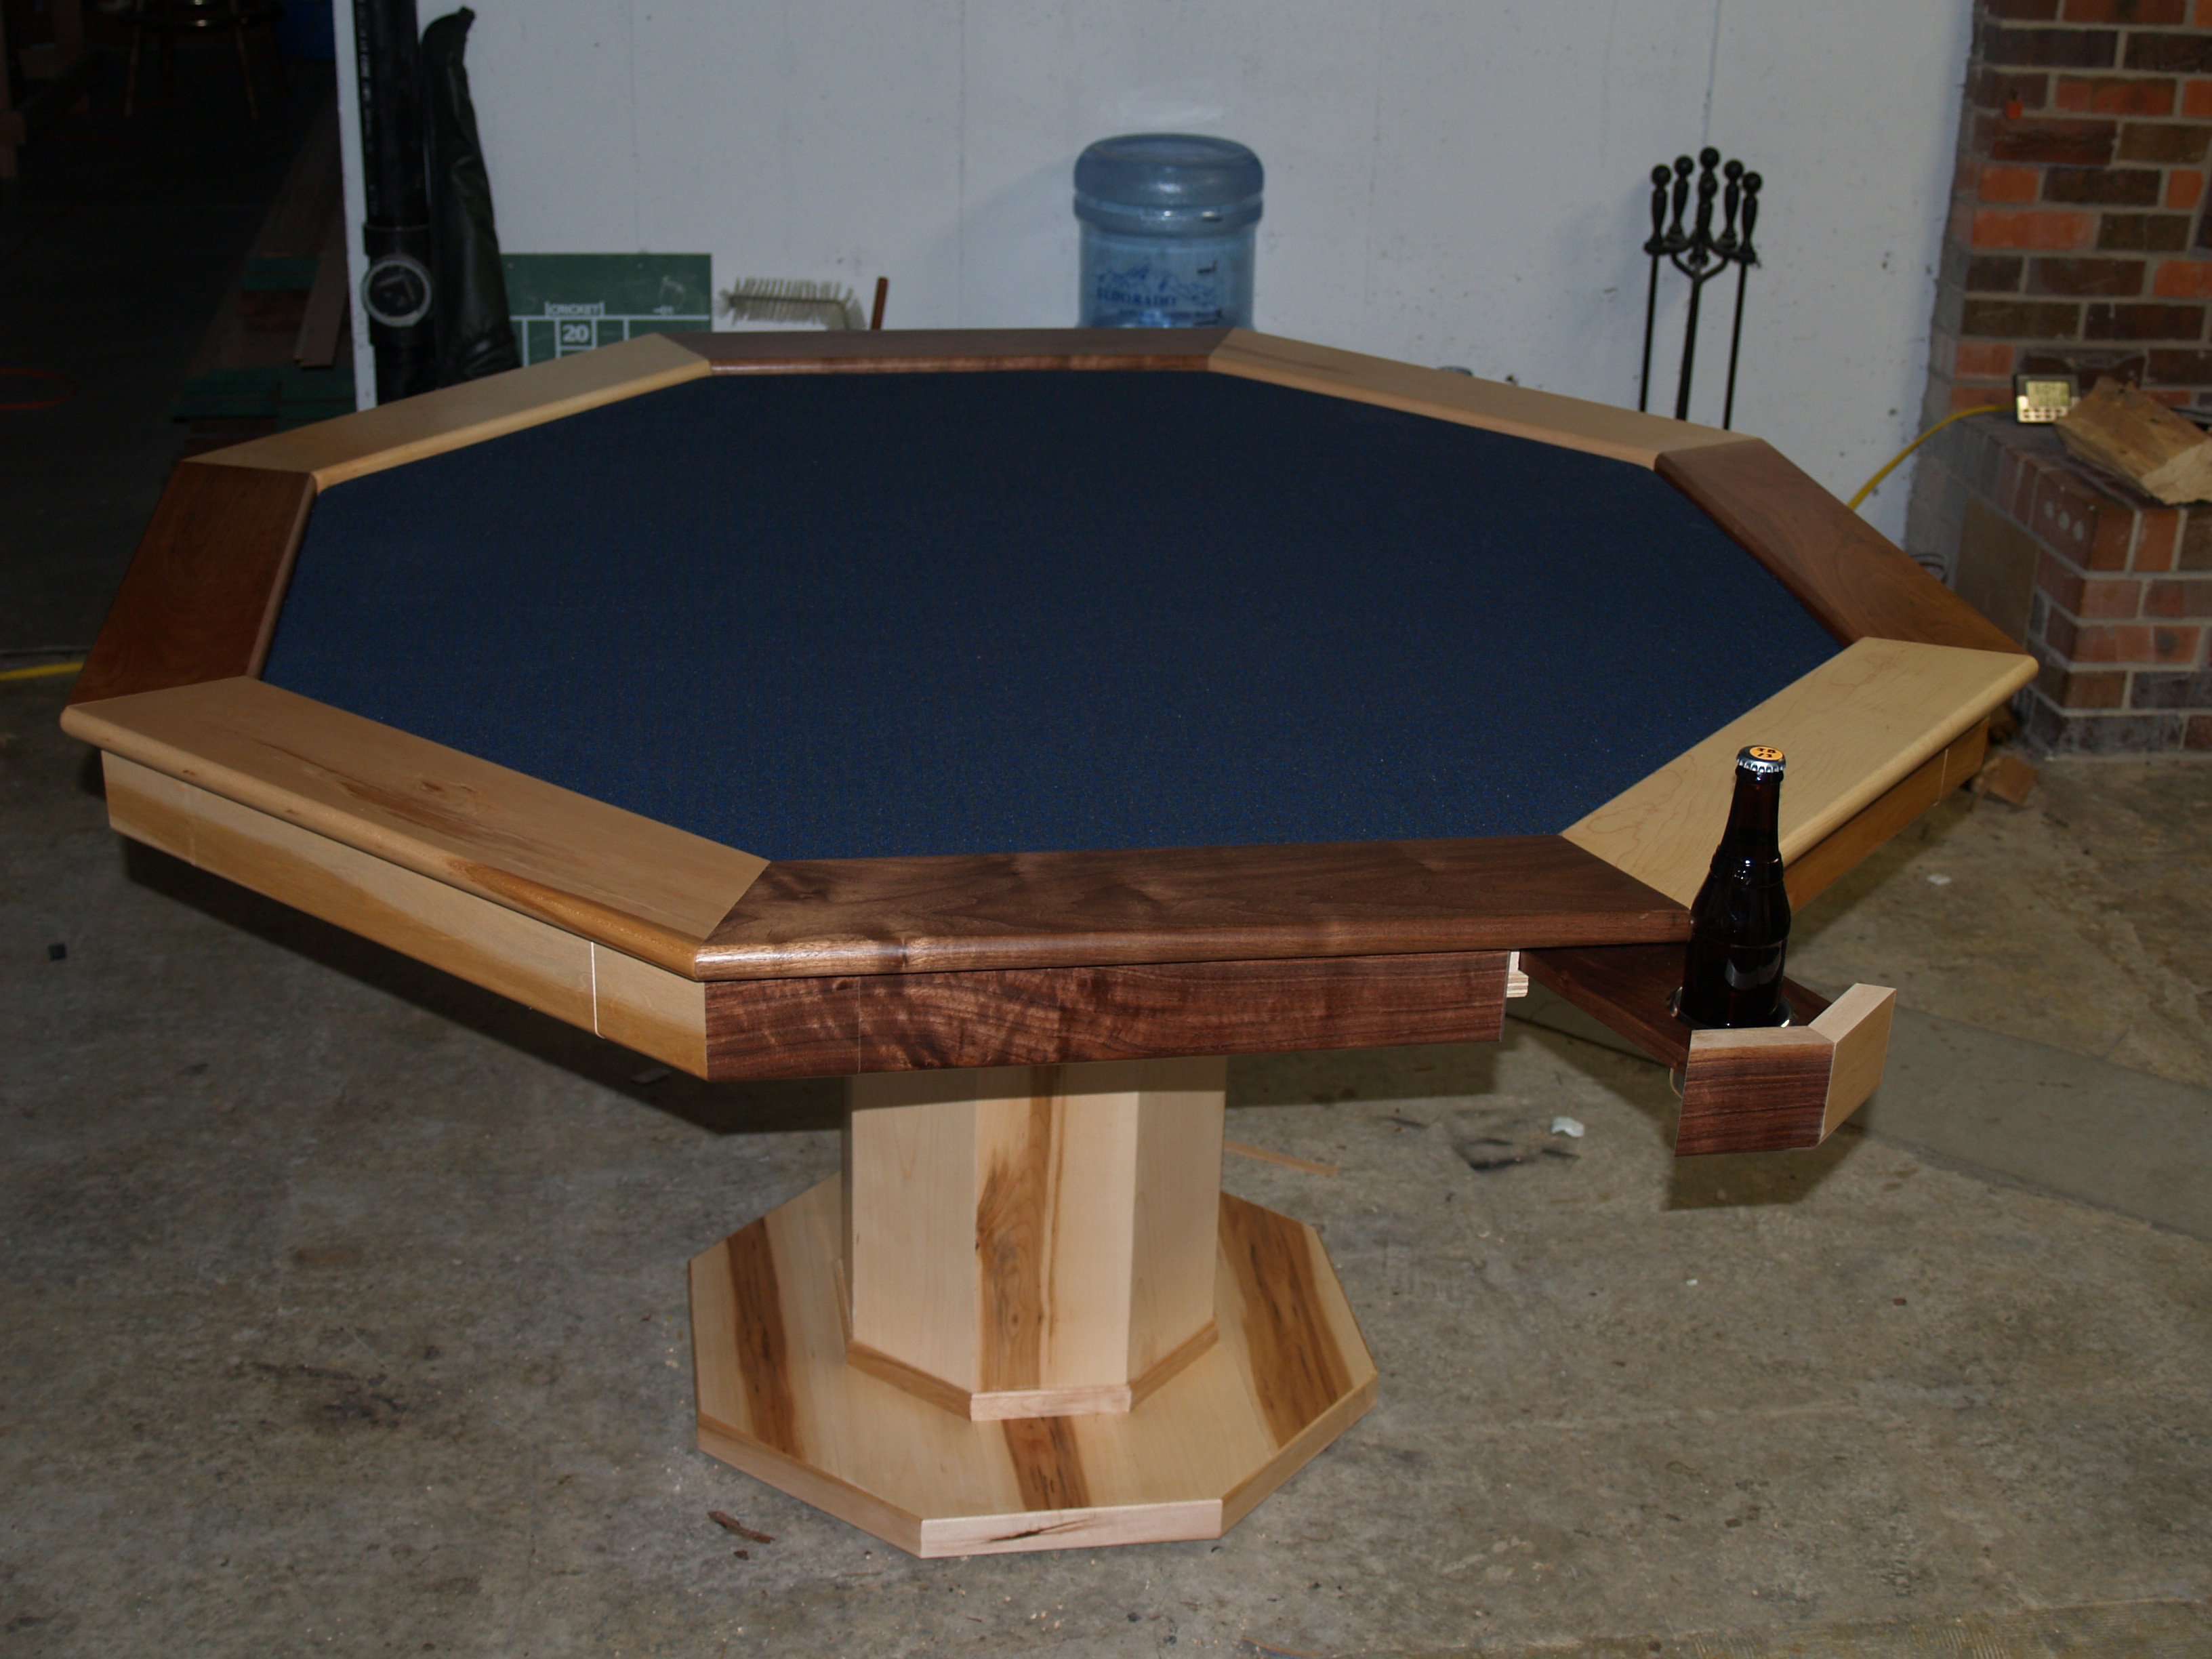 Ana White Poker Table With Hiding Beverage Holder Diy